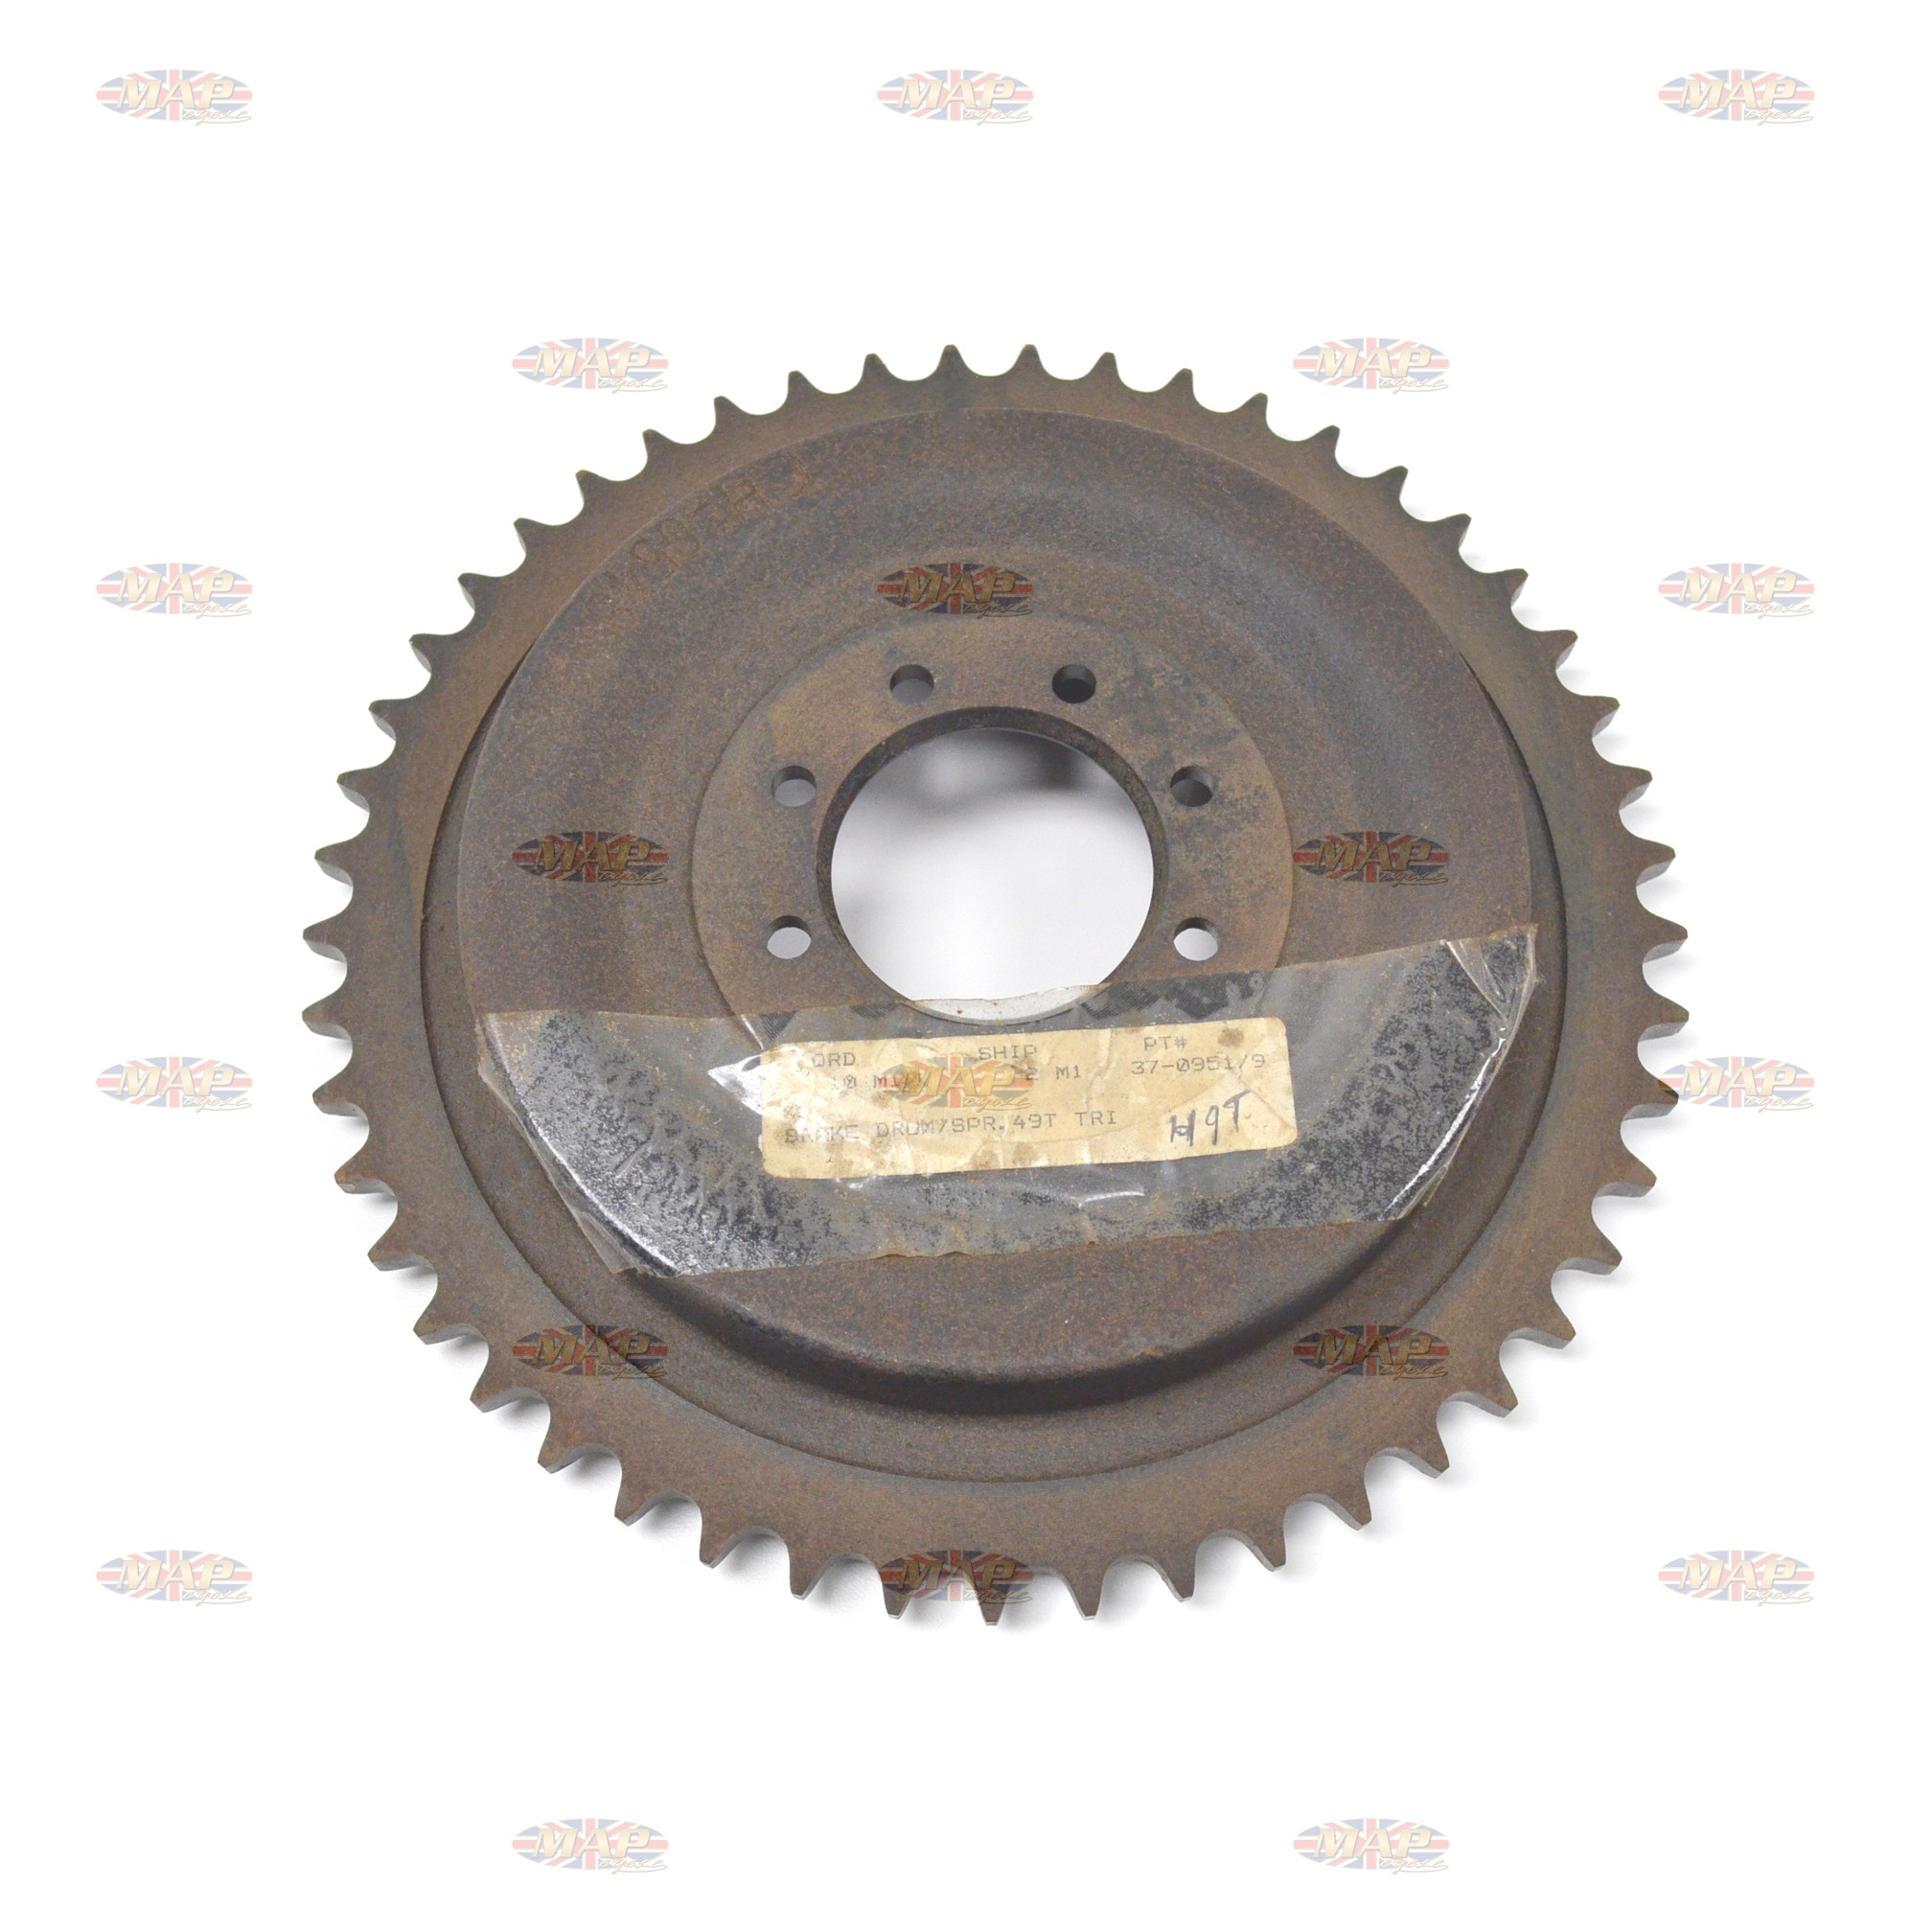 DRUMSPROCKET/ TRI 46T 8-BOLT PATTERN 37-0951/P